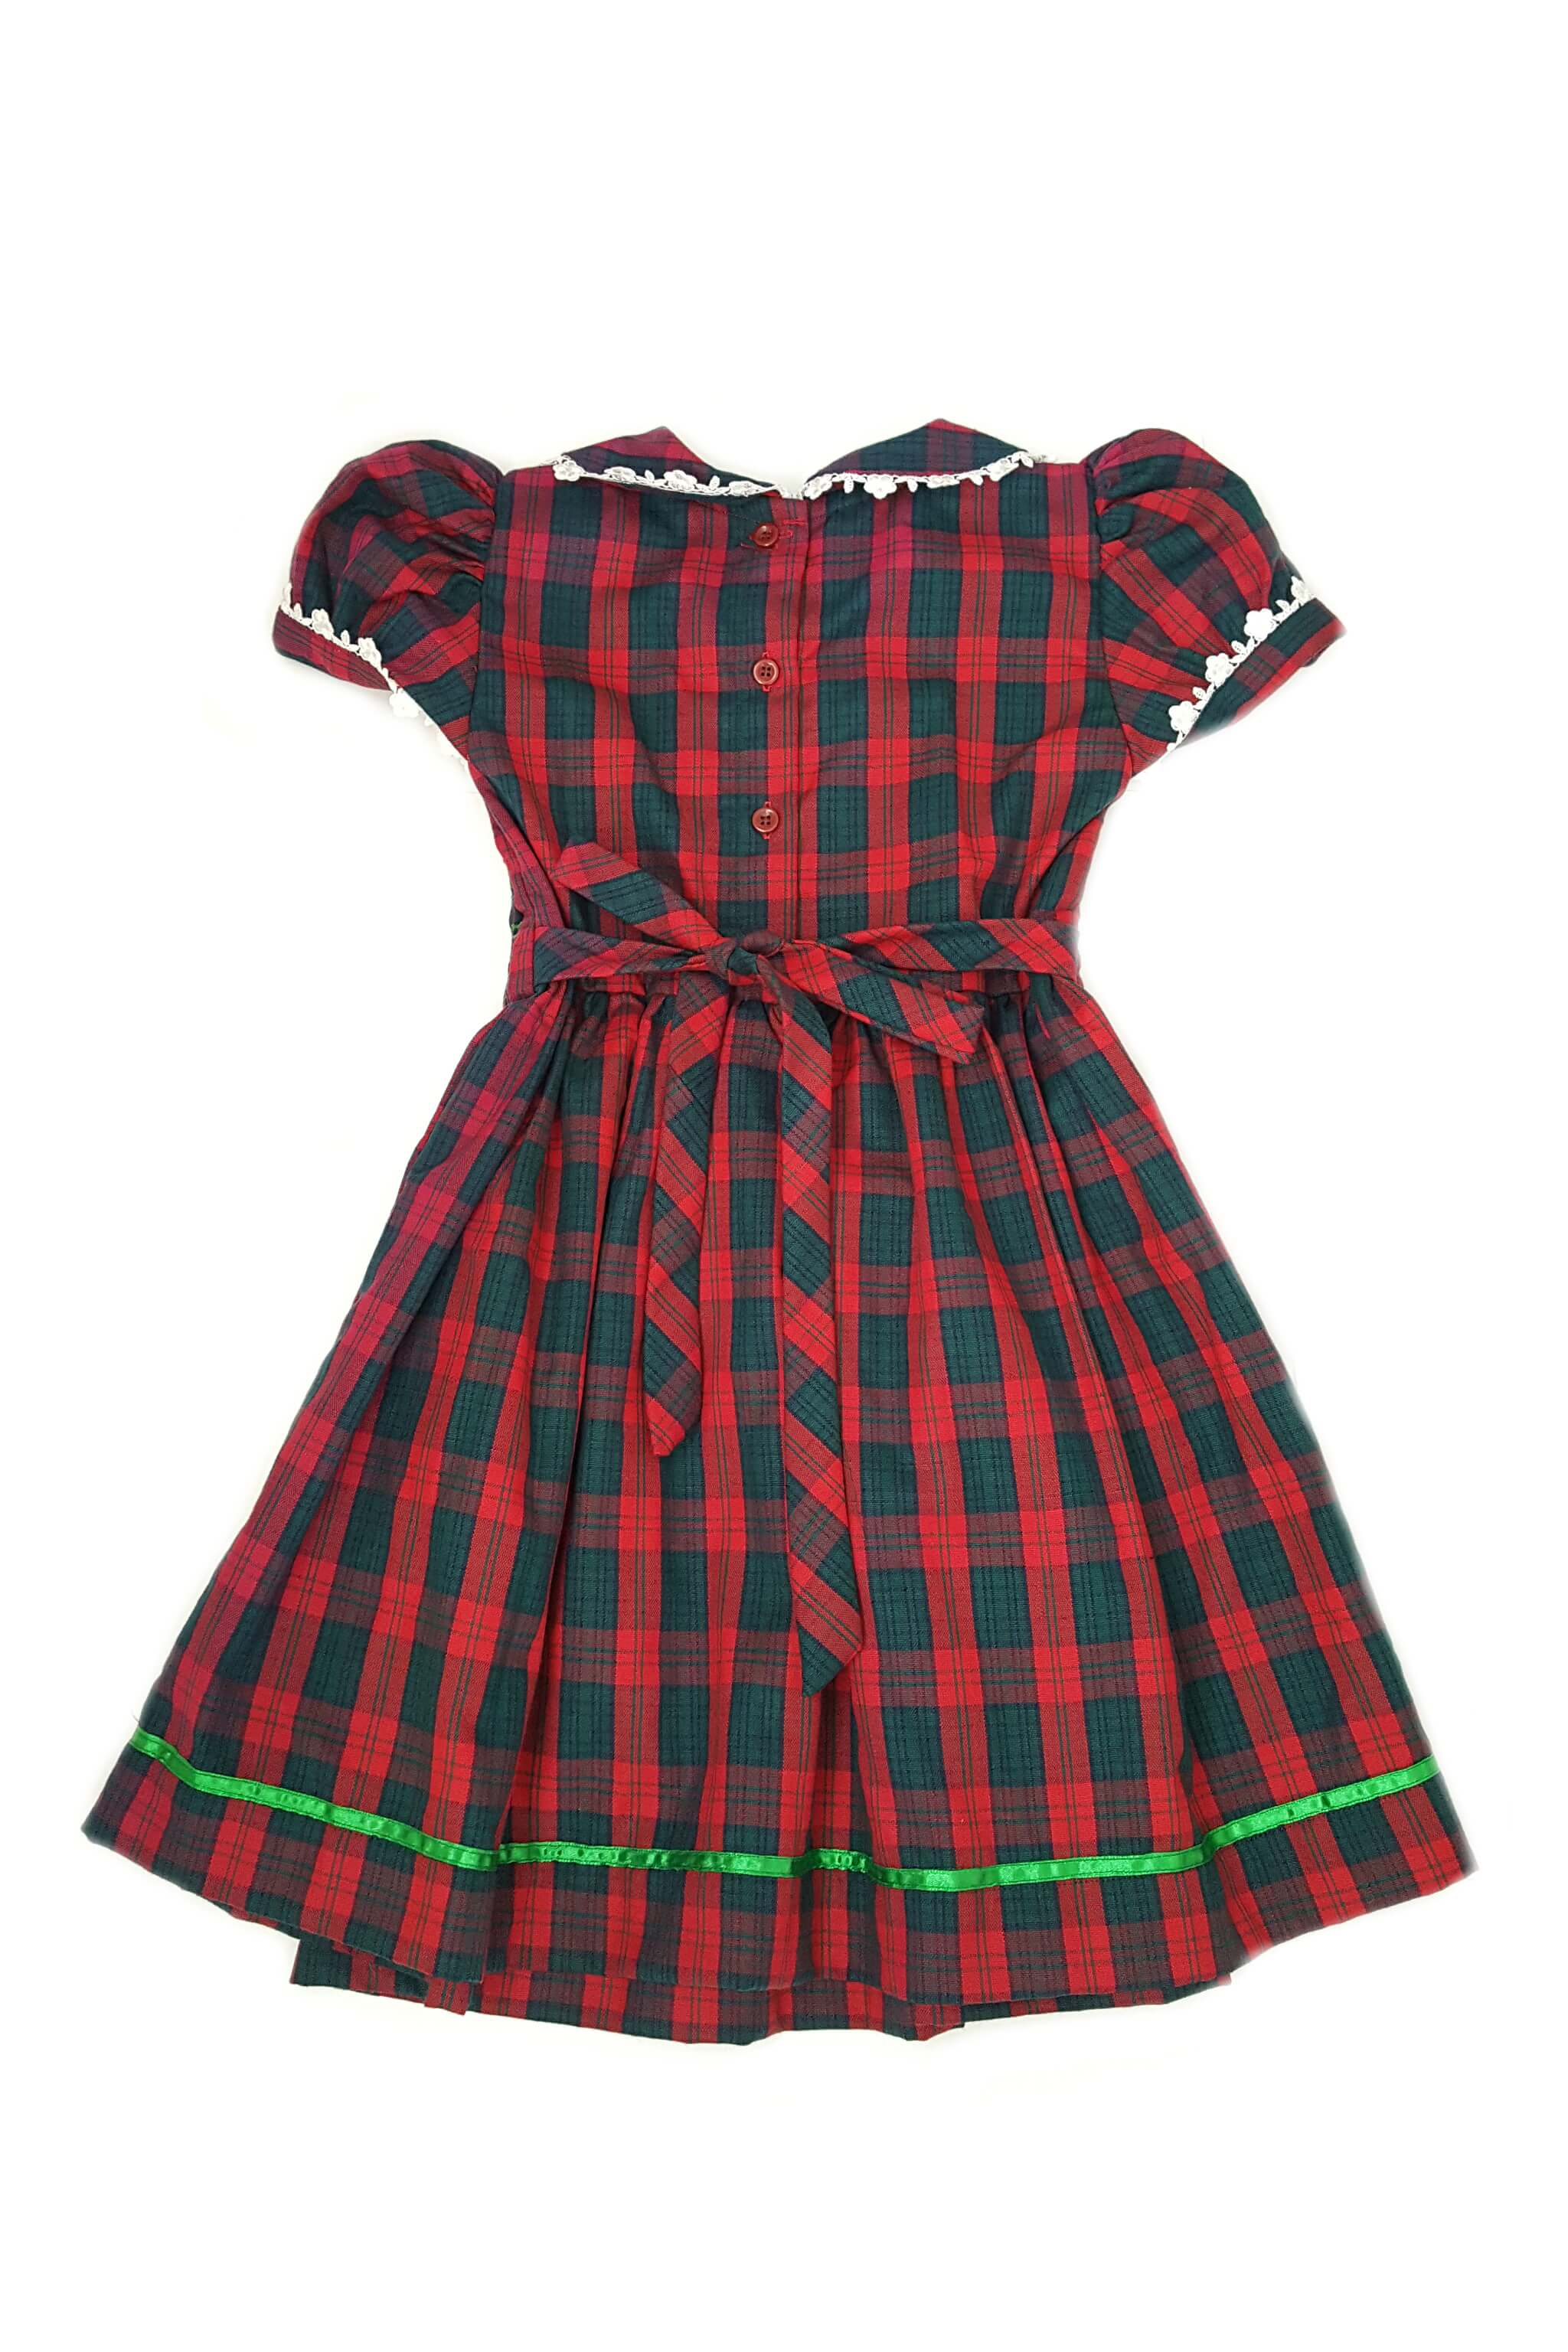 Red and green plaid smocked dress with intricate white lace details, green satin trim and long sleeves for 3-4 year old girls